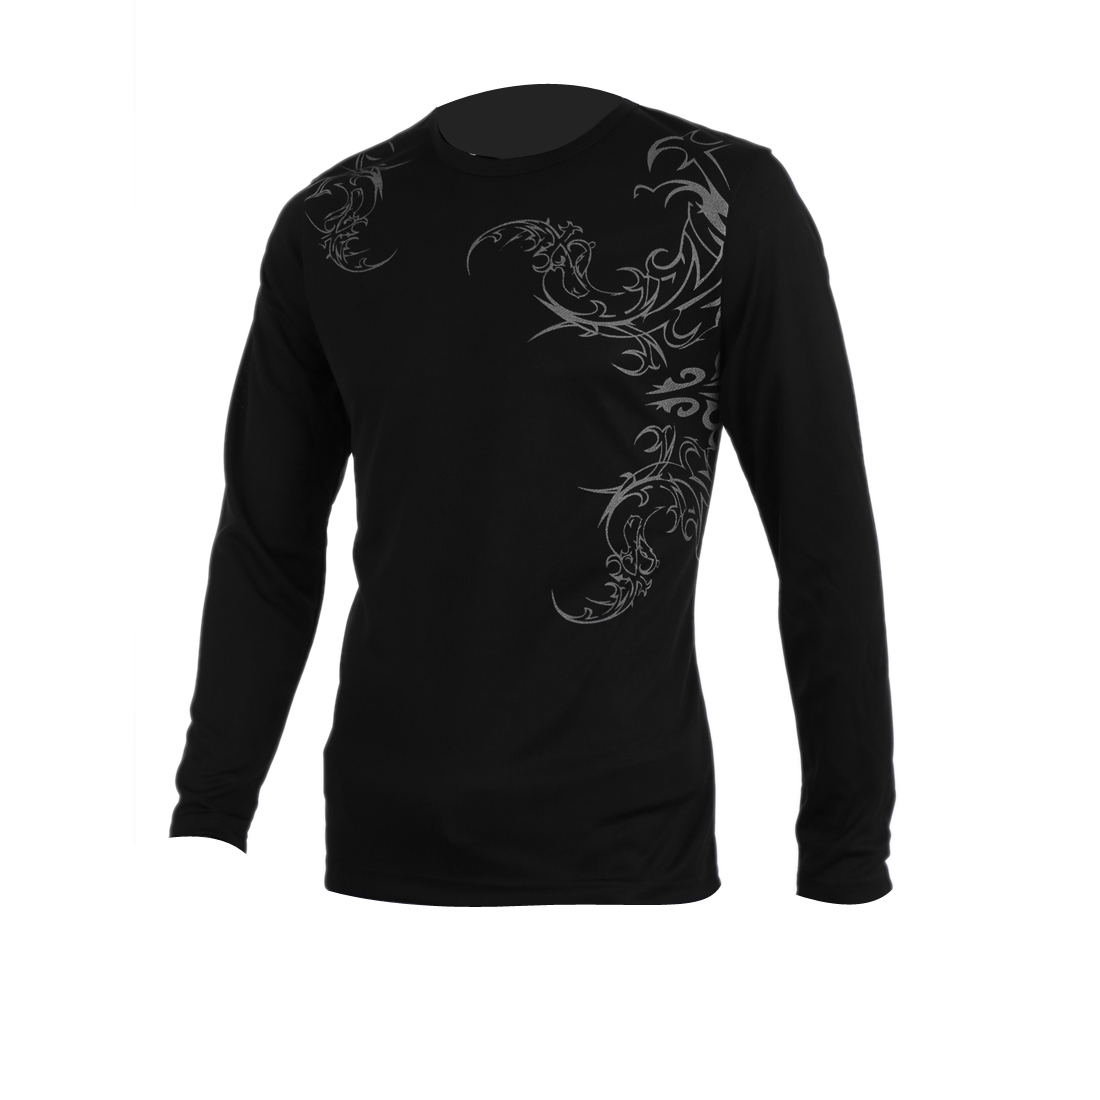 Men Close-fitting Novetly Prints Long Sleeve Black T-Shirt M